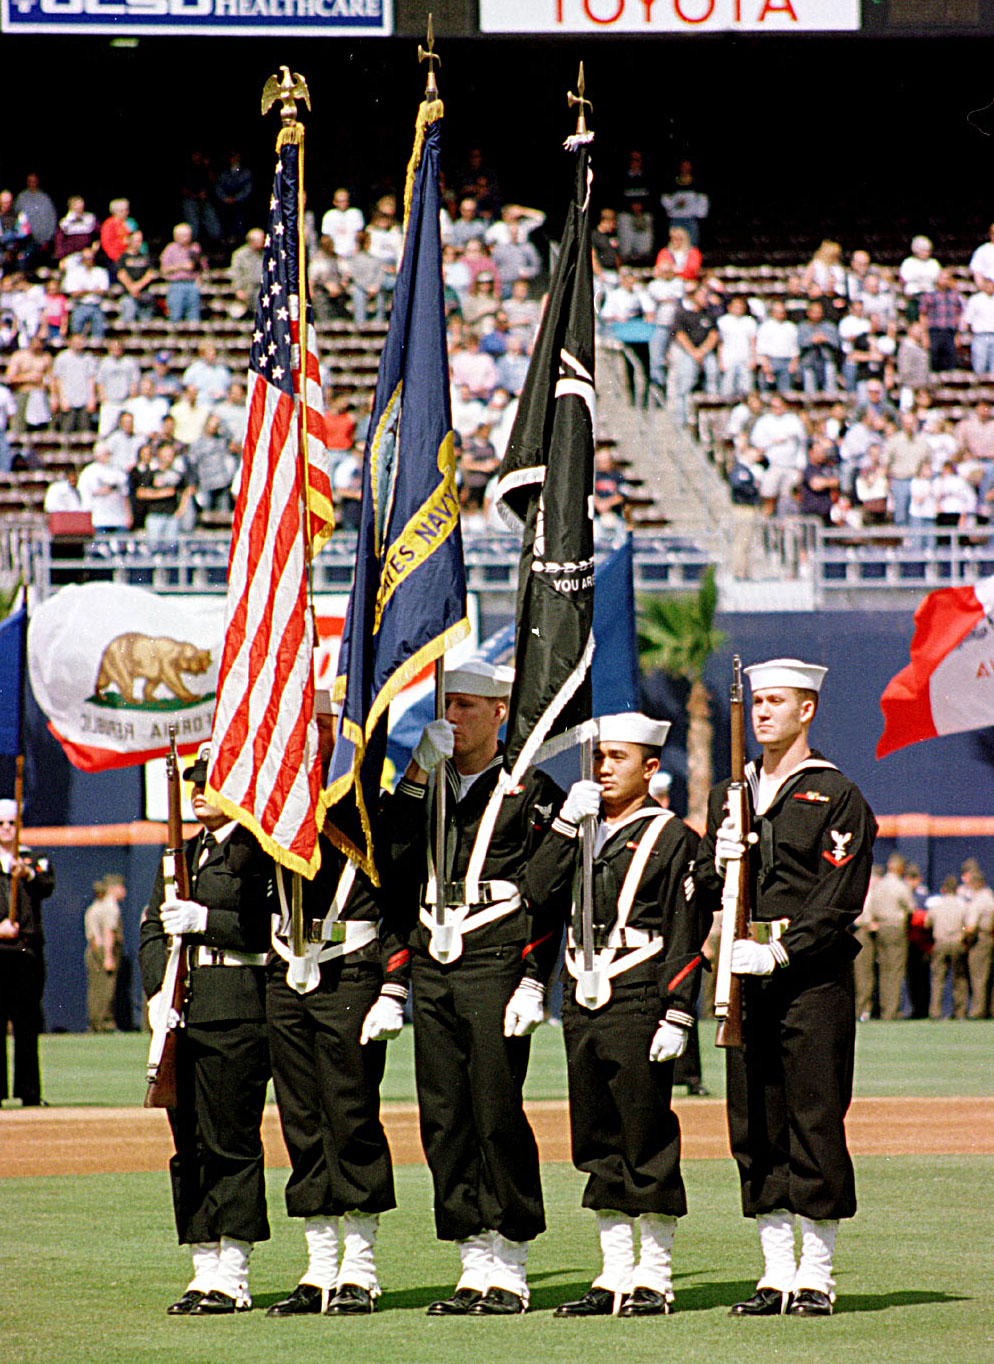 File 970403 N 1016m 001 Navy Color Guard Jpg Wikimedia